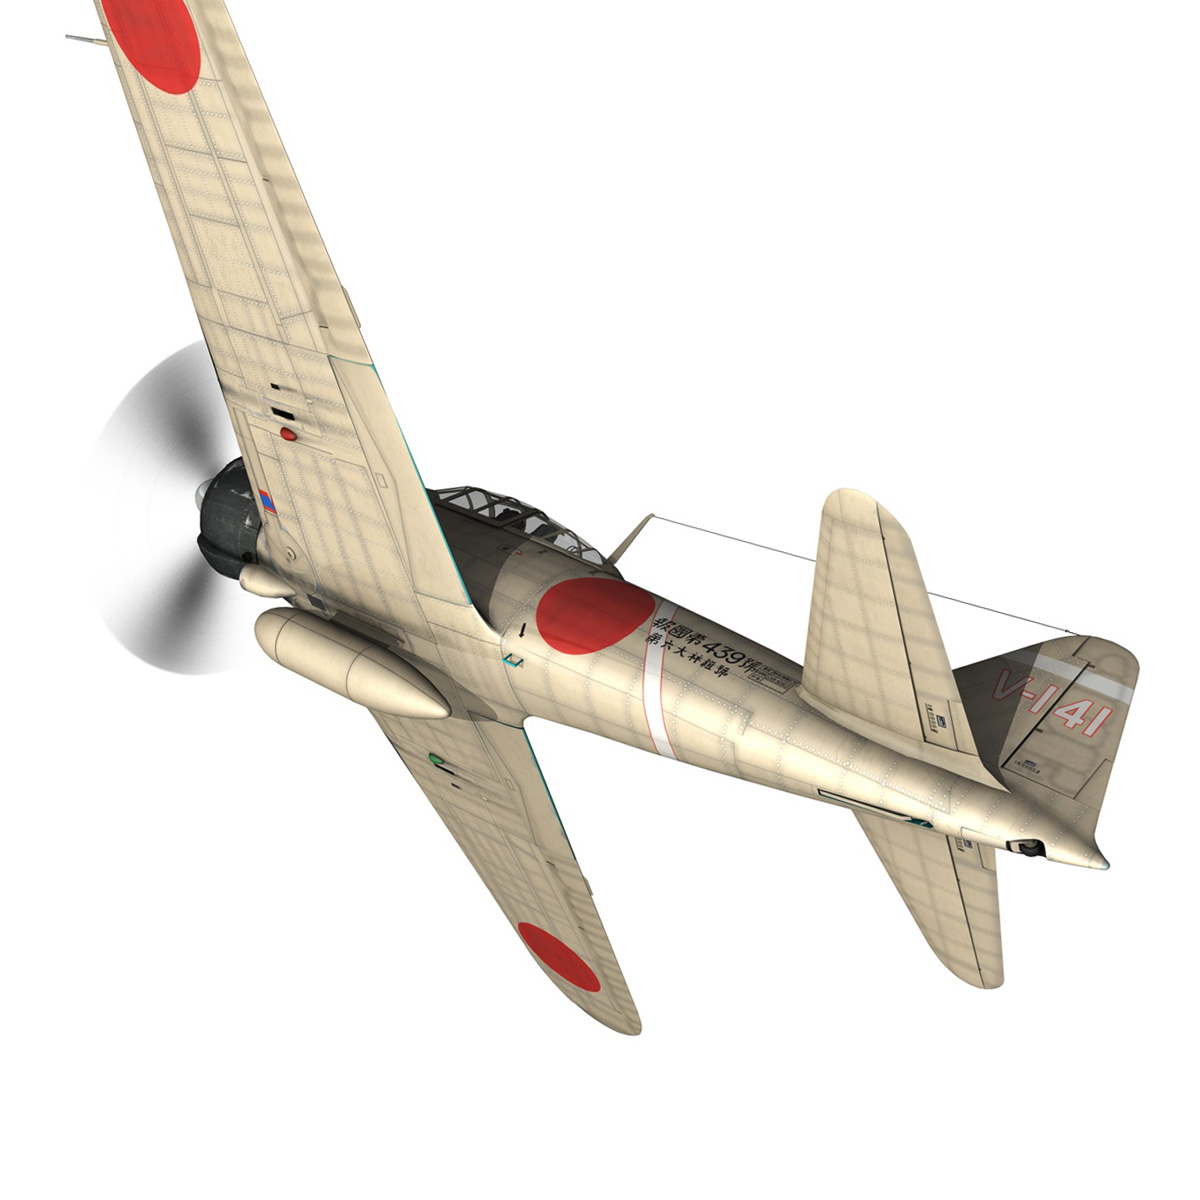 mitsubishi a6m2 zero – tainan air group 3d model fbx lwo obj 272728